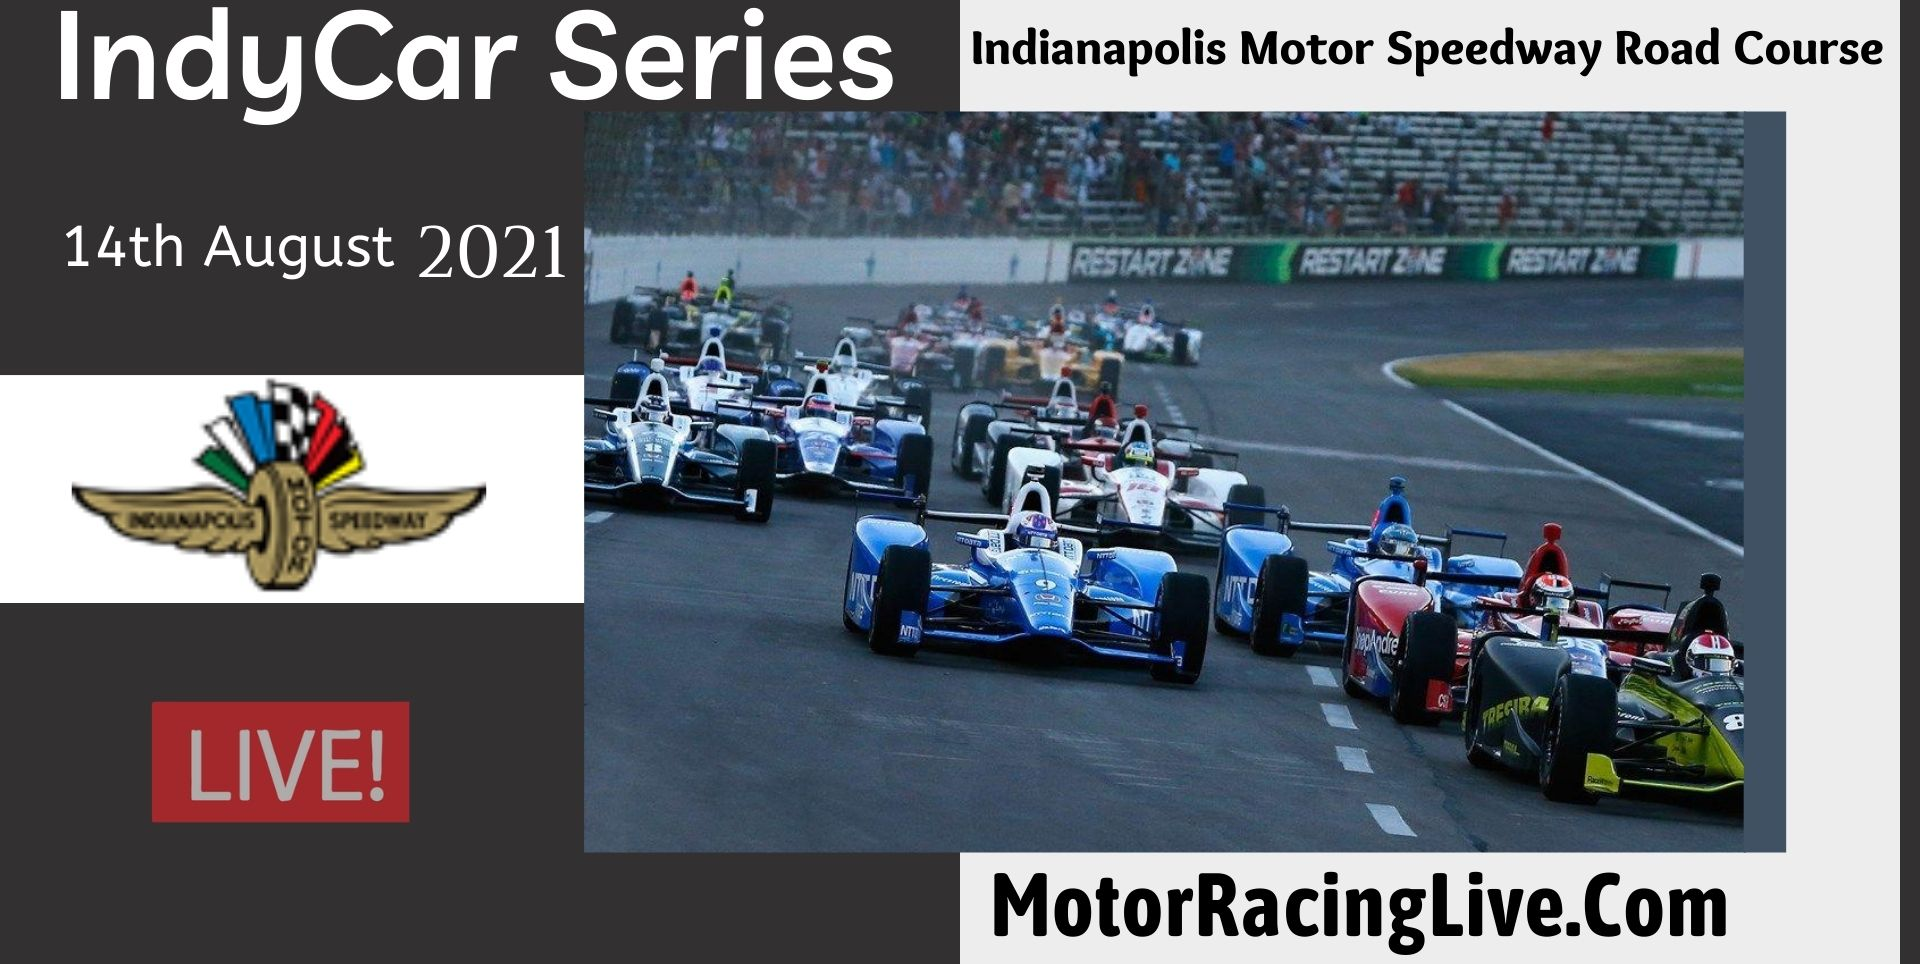 Indianapolis Motor Speedway Road Course Live 2021 | Indycar